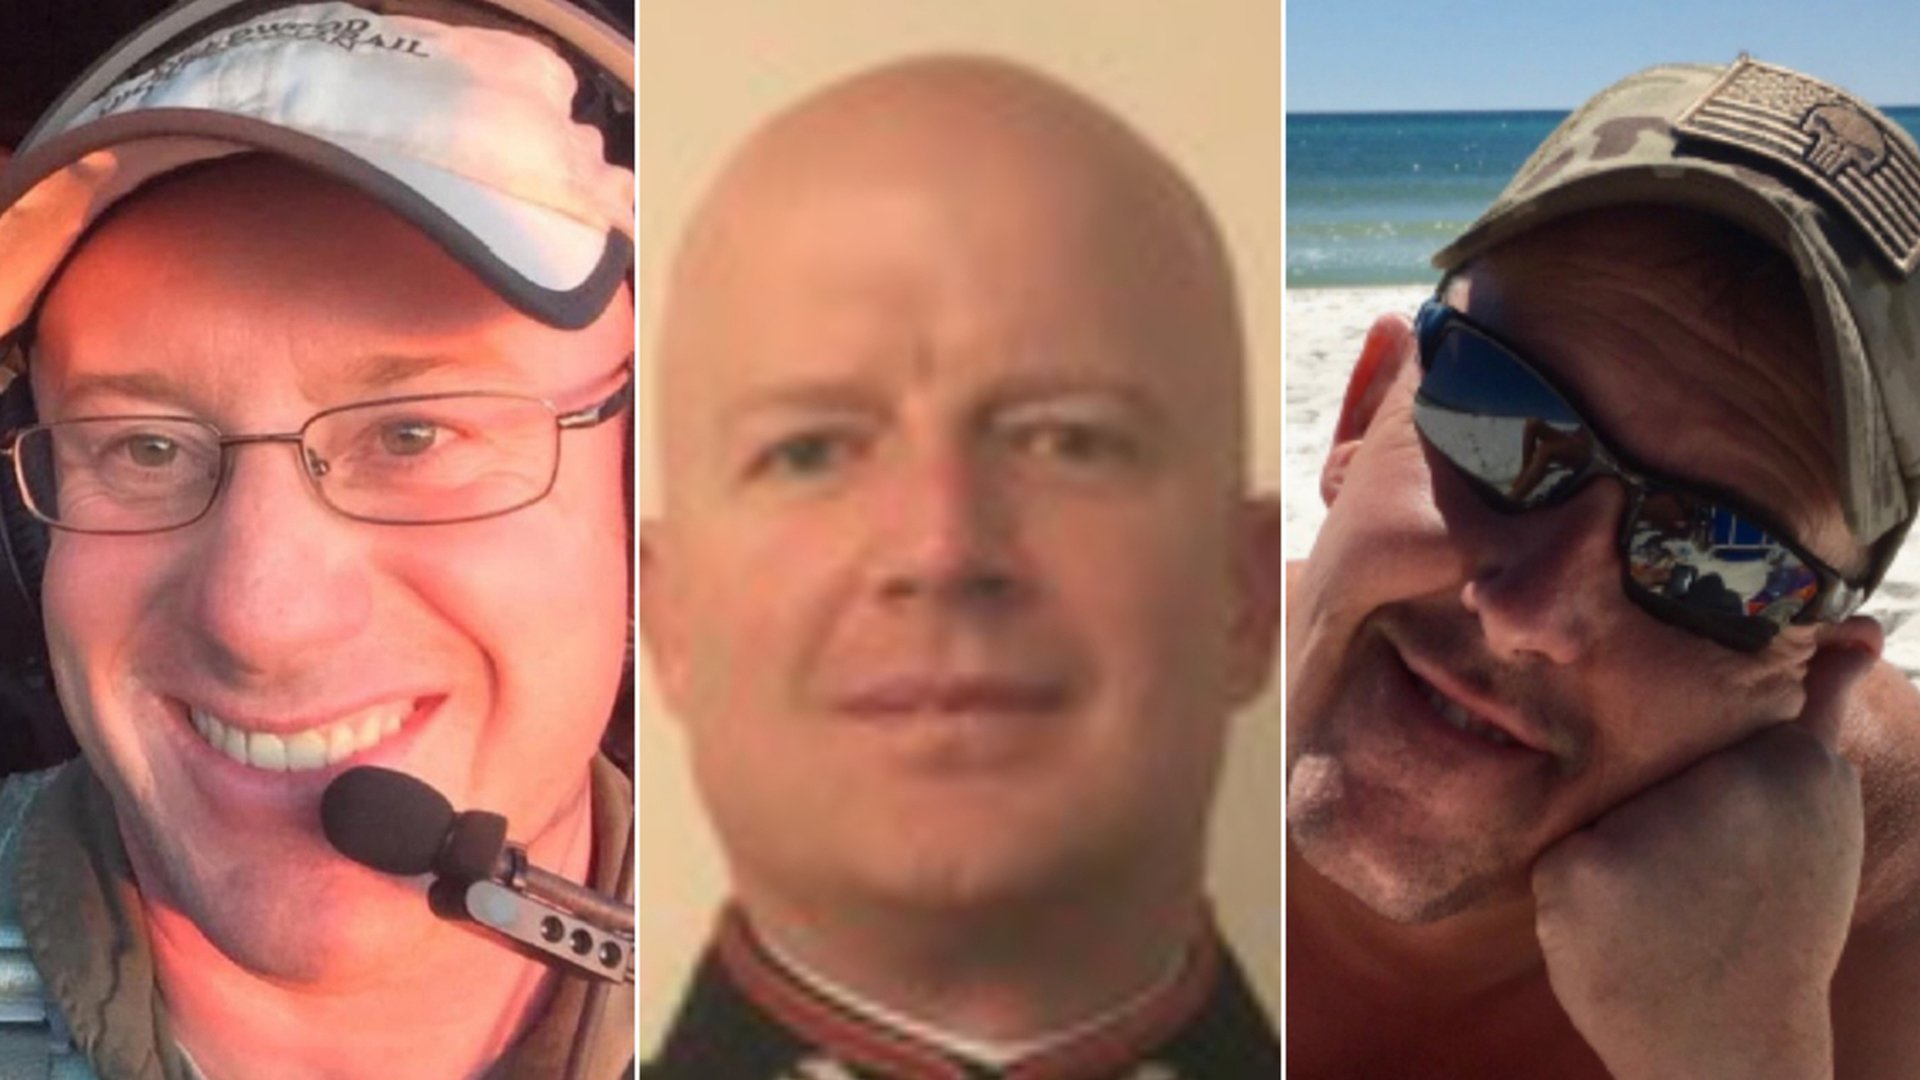 The three firefighters have been identified as (from left to right) Capt. Ian McBeth of Great Falls, Montana; First Officer Paul Clyde Hudson of Buckeye, Arizona; and Flight Engineer Rick DeMorgan Jr. of Navarre, Florida. (Credit: Coulson Aviation Inc.)